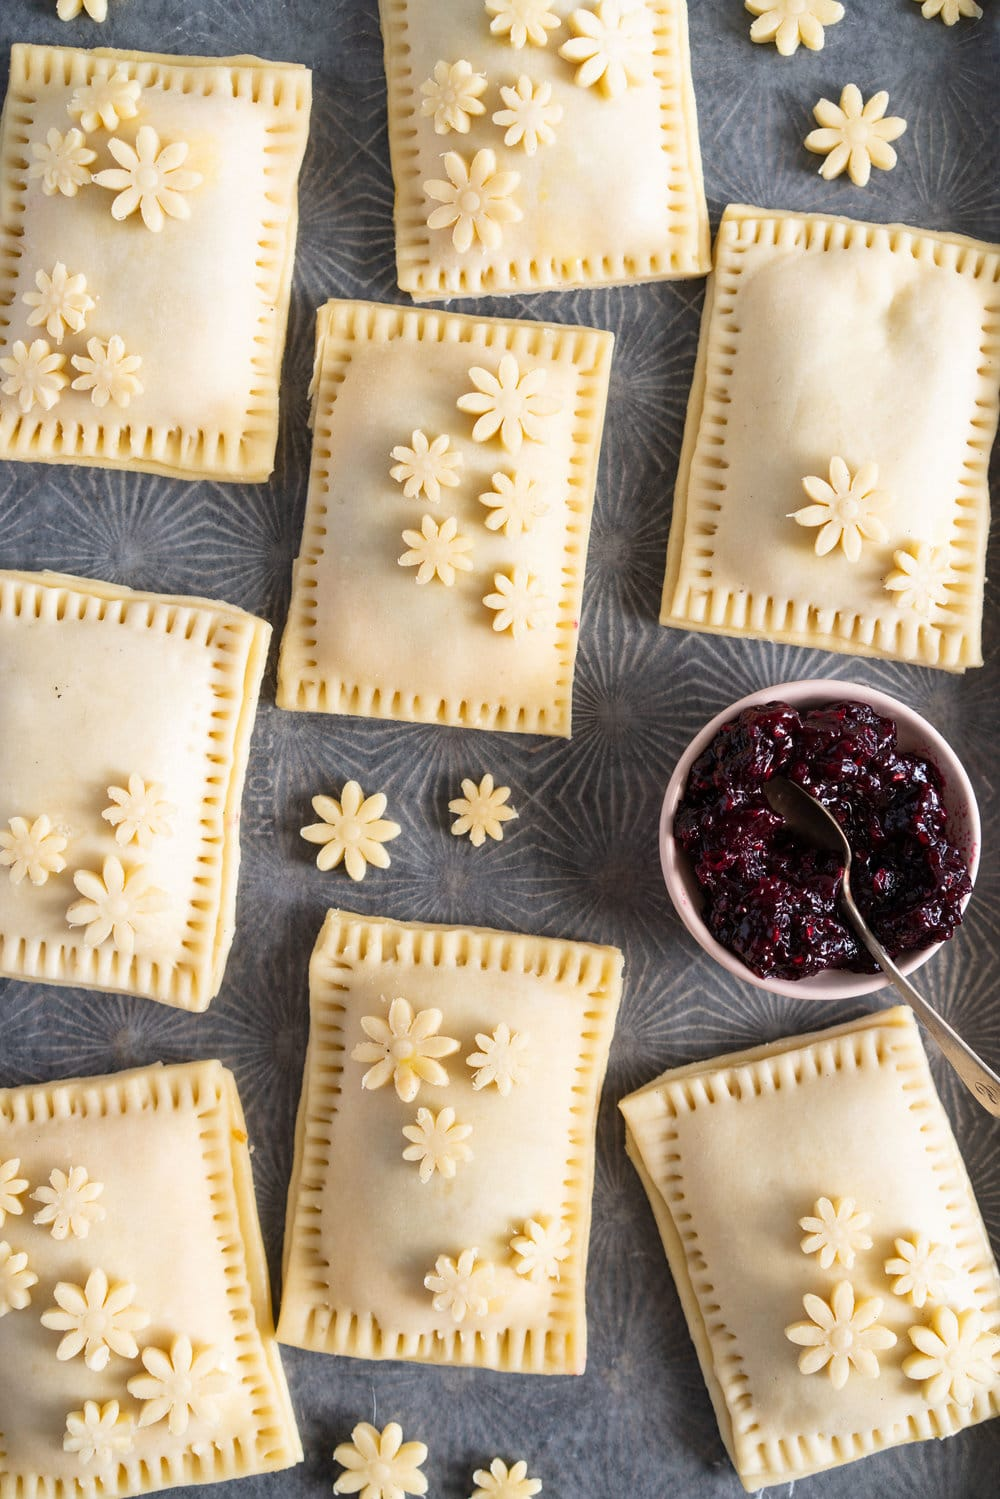 Mixed Berry and Cream Cheese Hand Pies - an easy flaky pie dough encases a mixed berry and vanilla bean cream cheese filling. These miniature pies are perfect for using up surplus cream cheese or jam that you may have, or for making use of slightly sad or tired berries. #handpies #easyhandpies #mixedberryjam